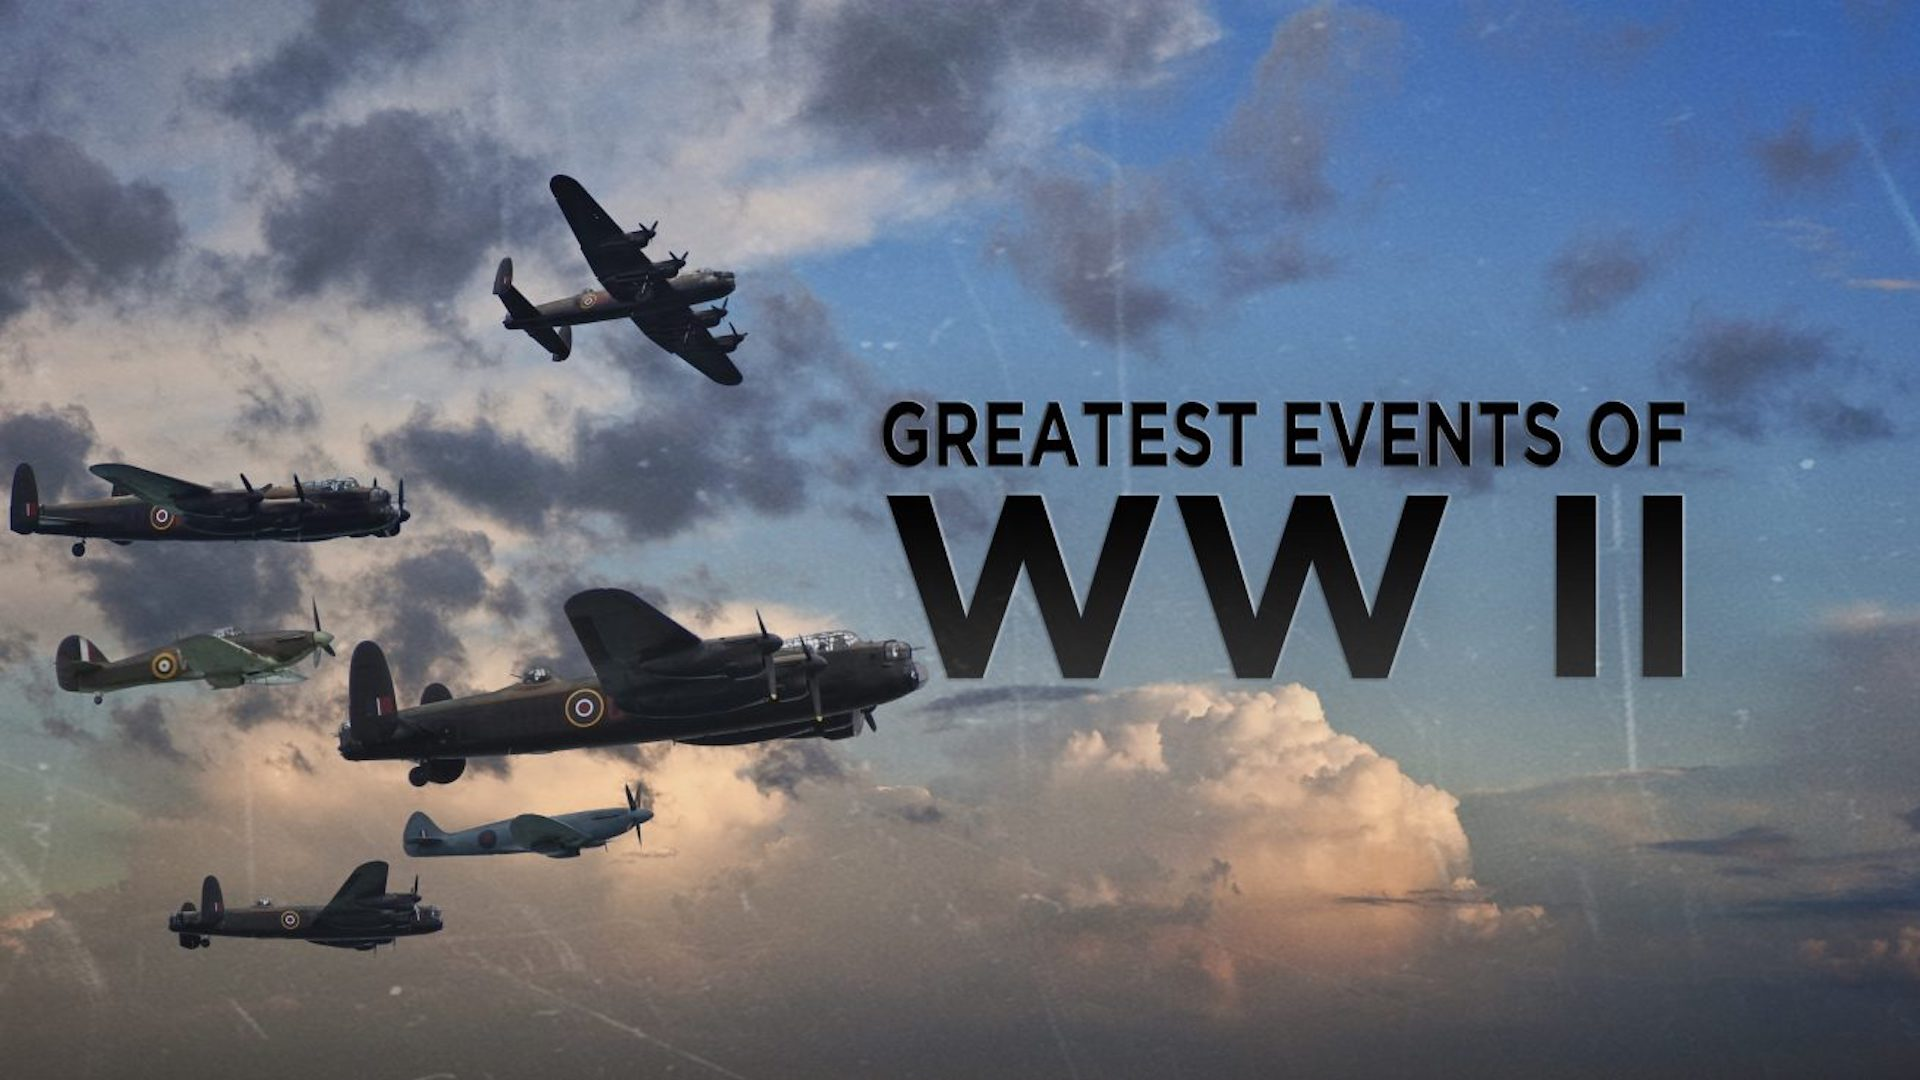 greatest events of world war ii in hd colour s01e09 720p web x264-stout